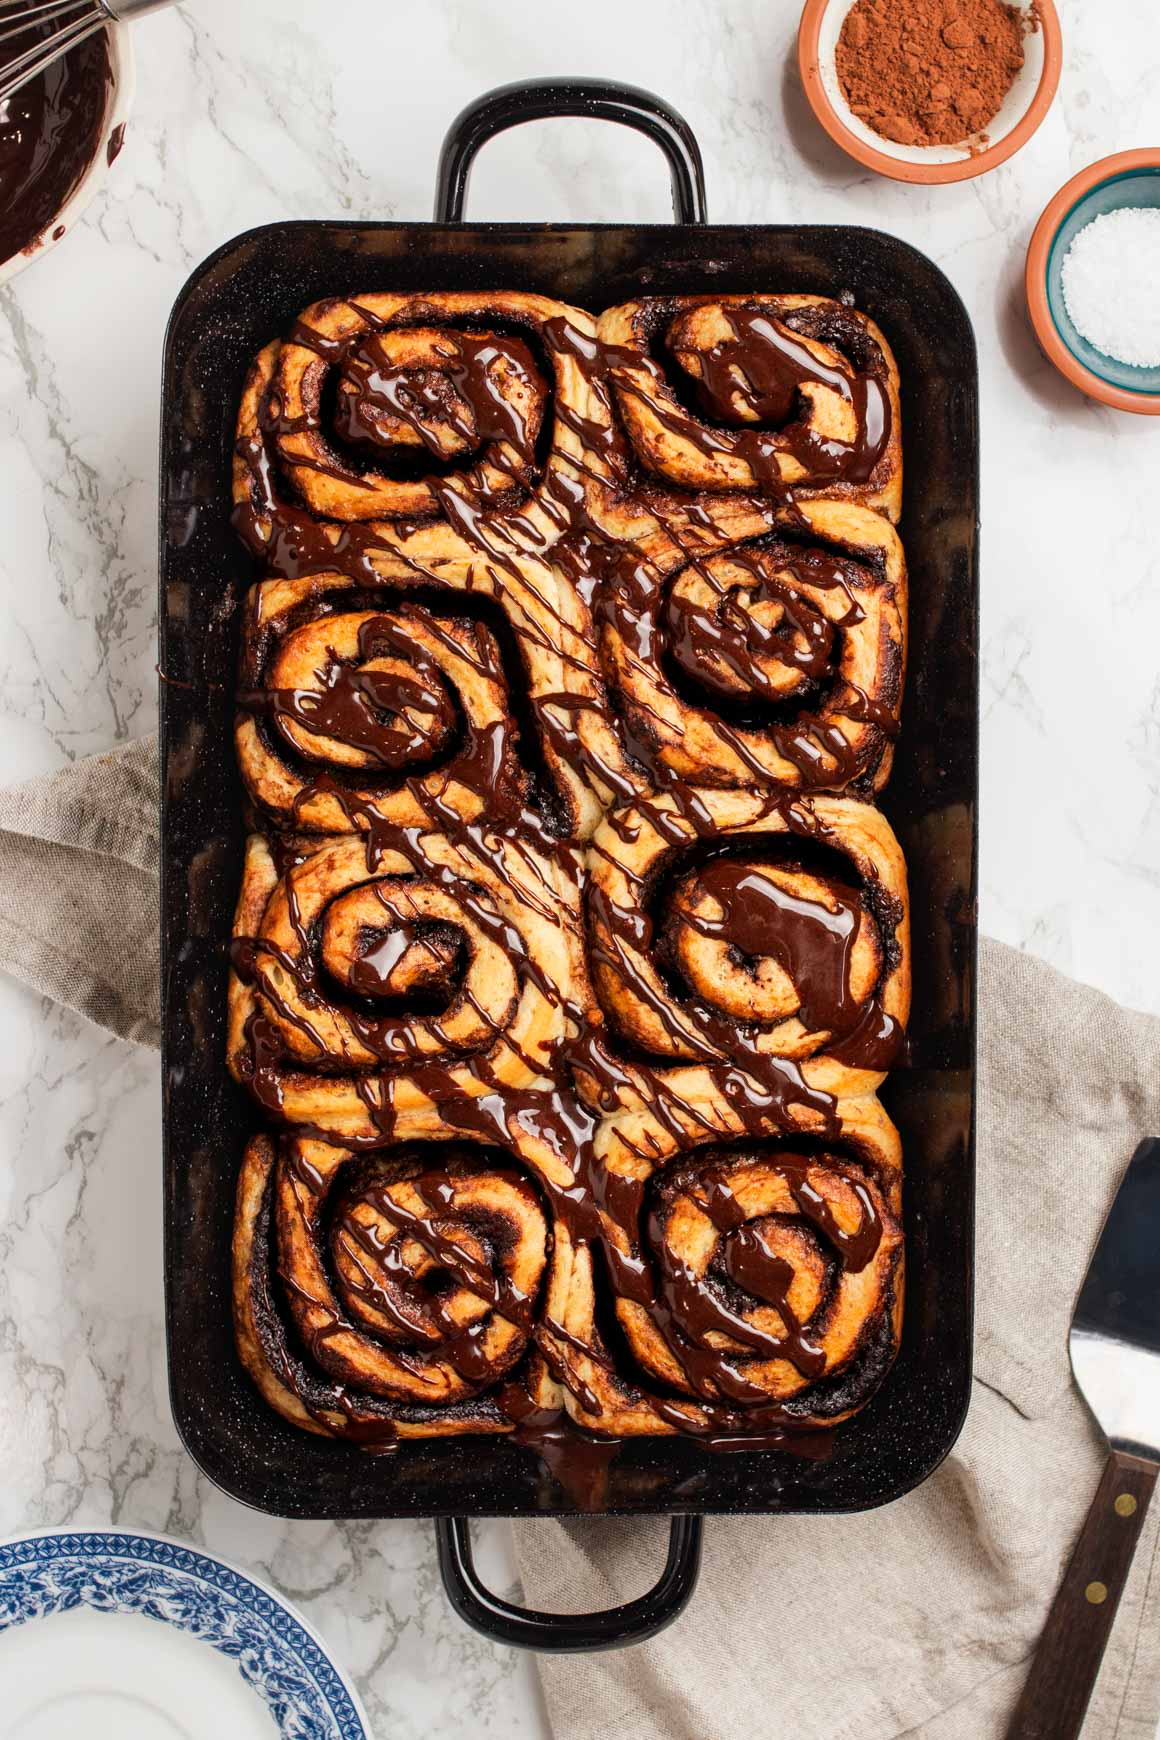 vegan chocolate cinnamon buns with chocolate glaze